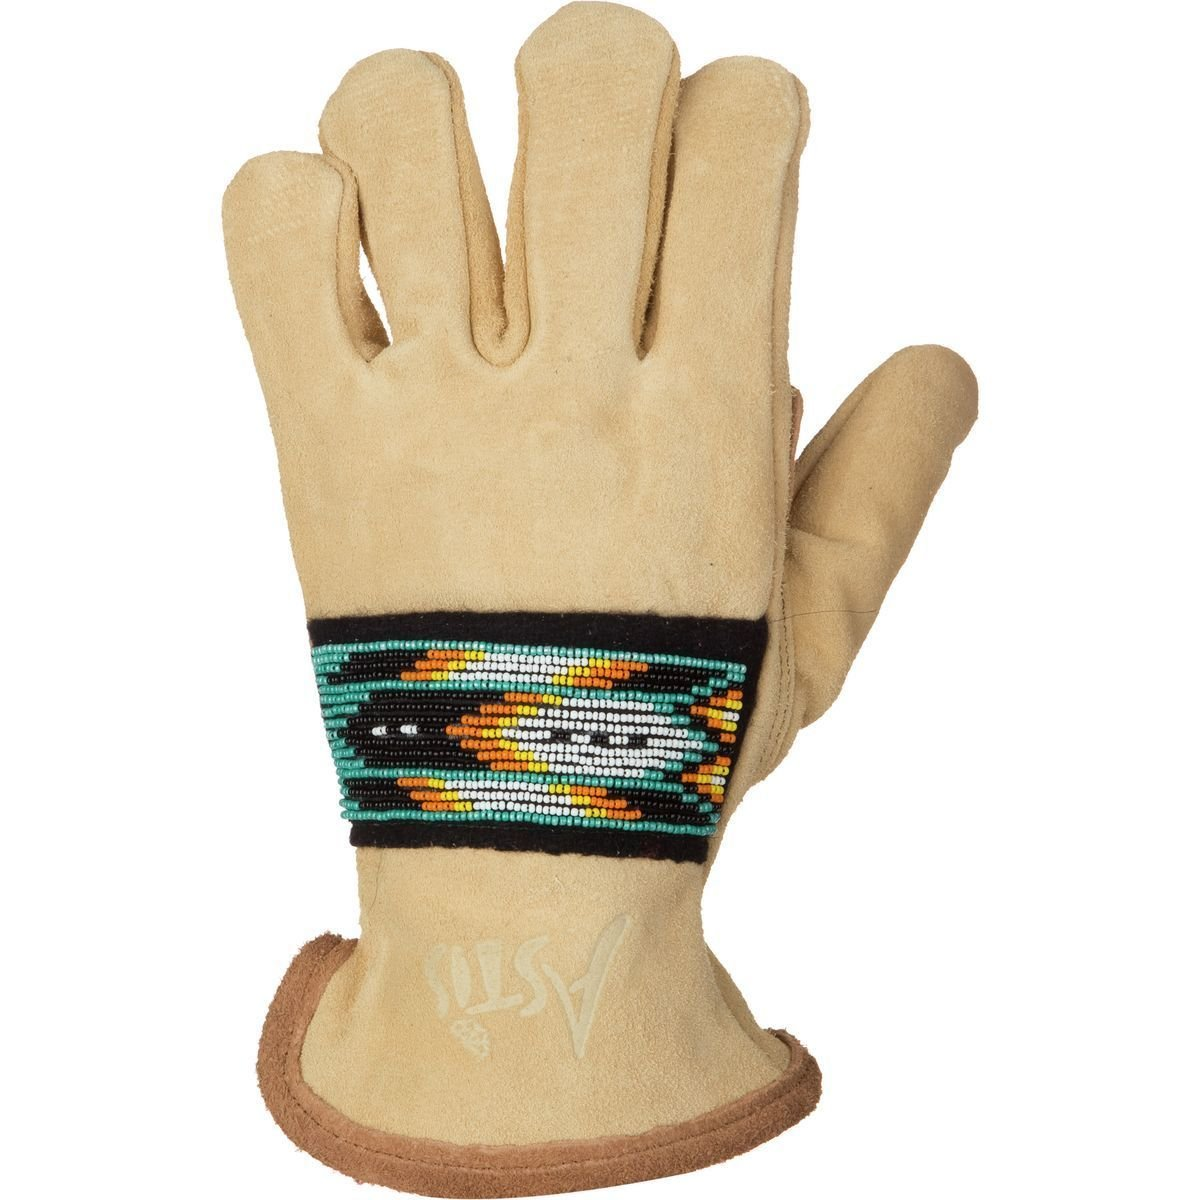 Astis Makalu Glove One Color, M